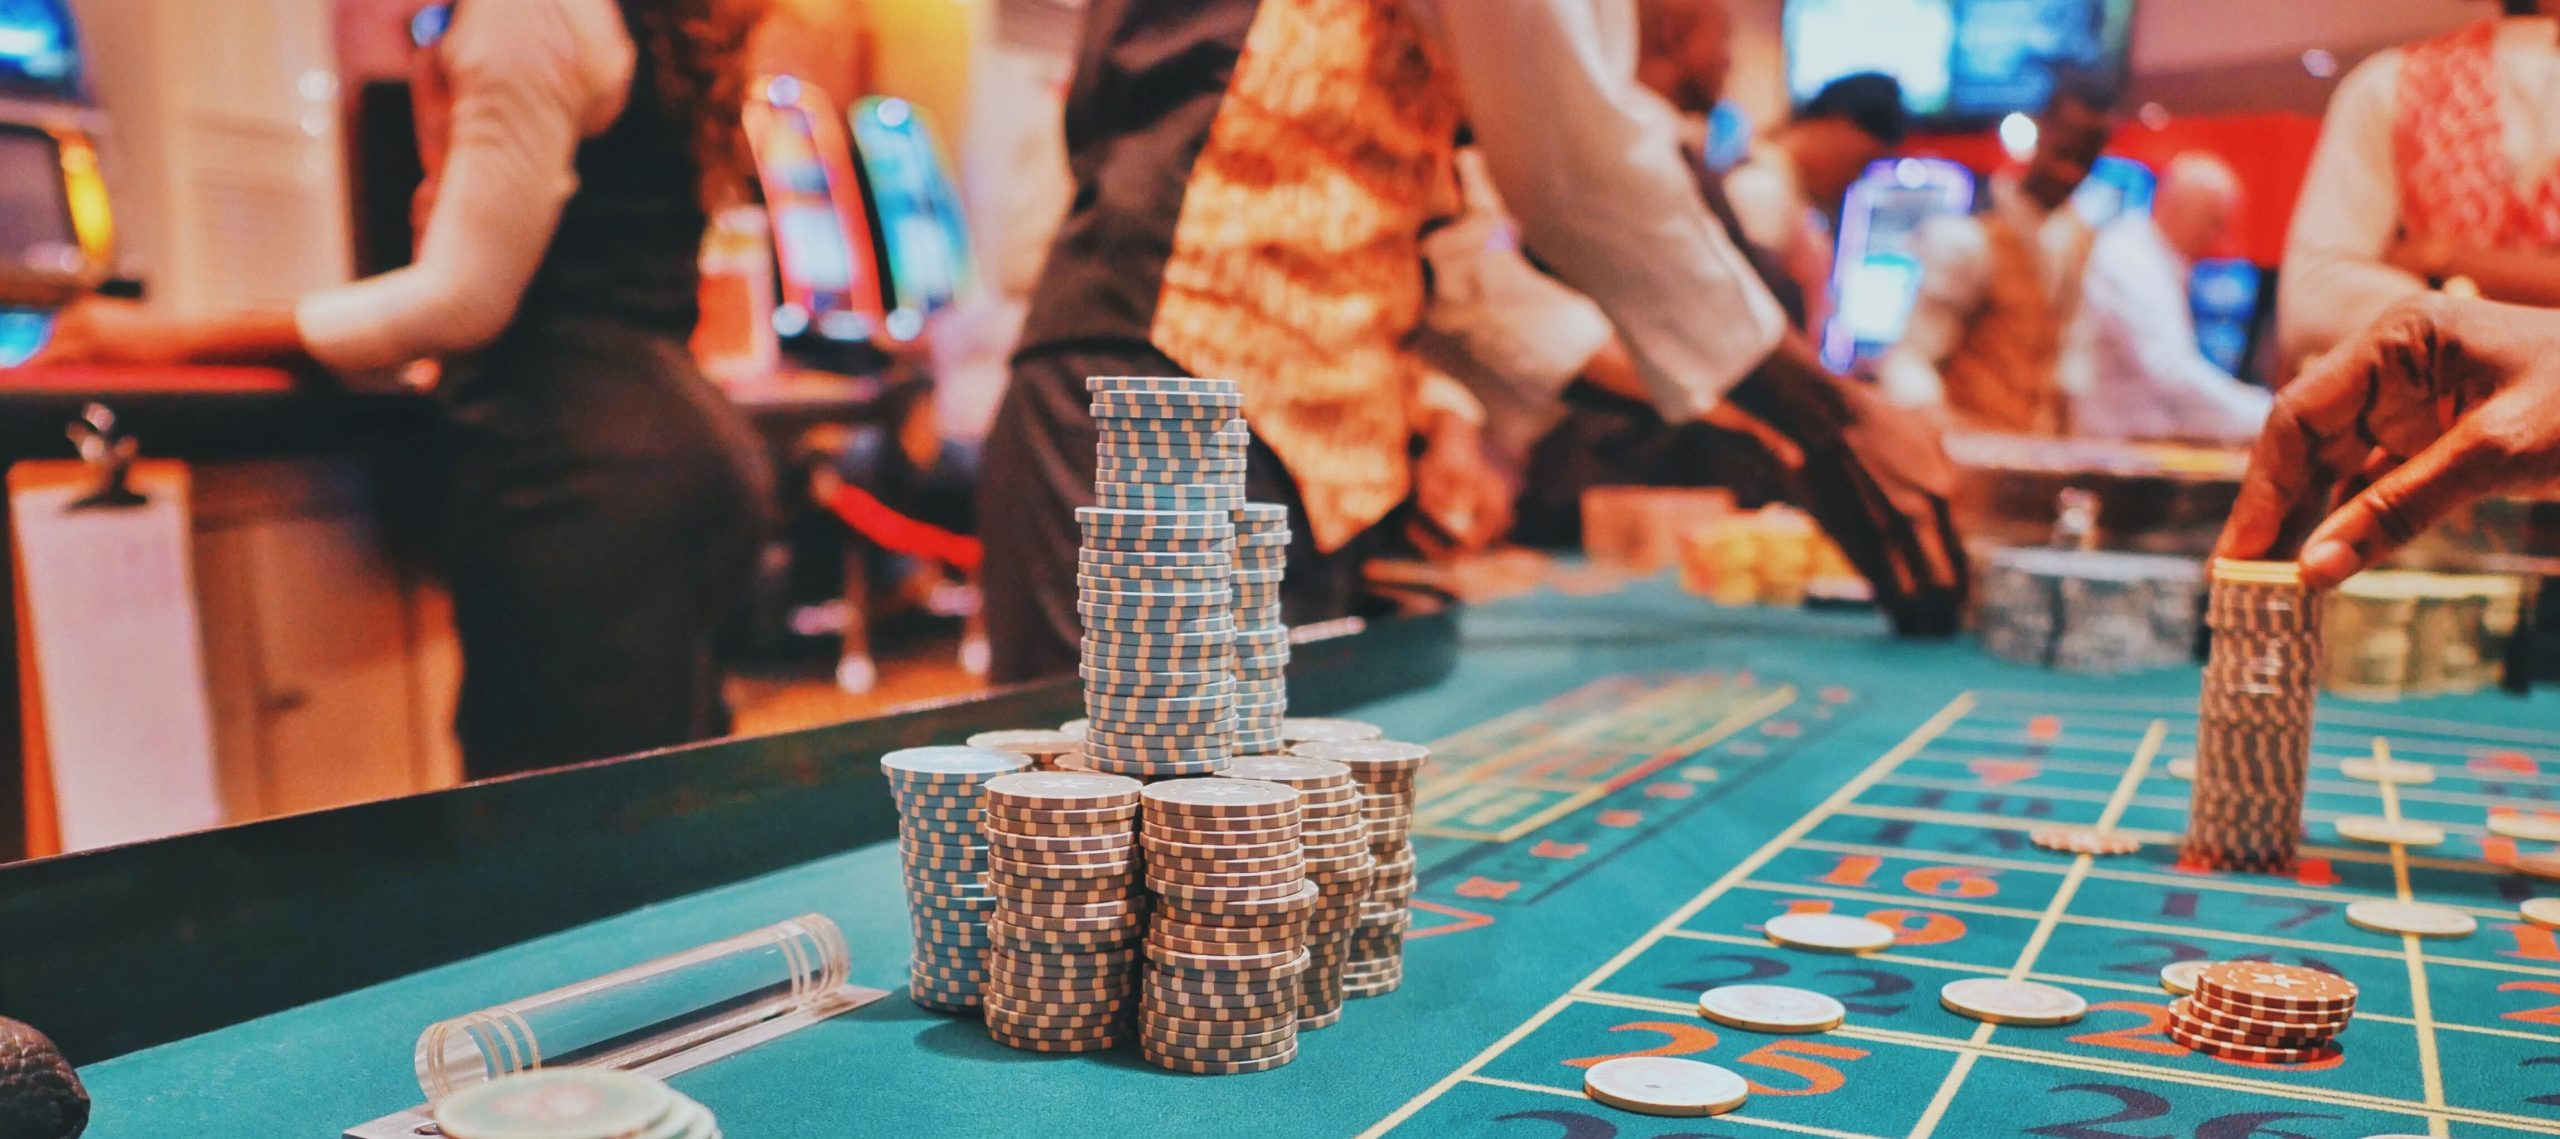 Play Free American Roulette Online With A 1000 Bankroll At Slots Of Vegas